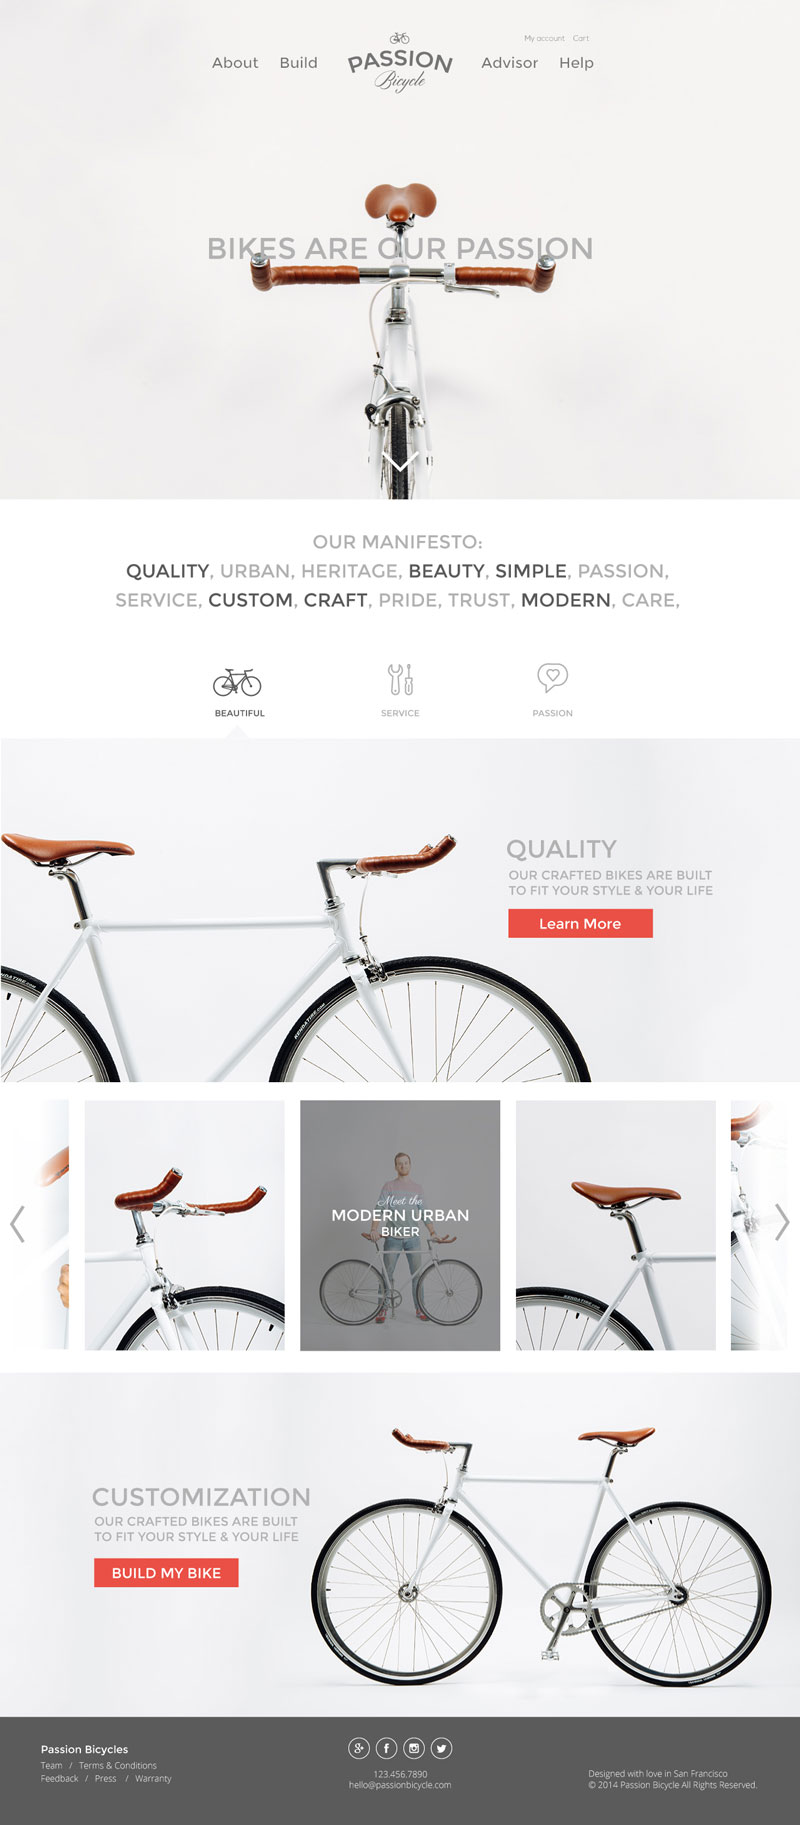 Product Website Inspiration - Passion-Bicycle